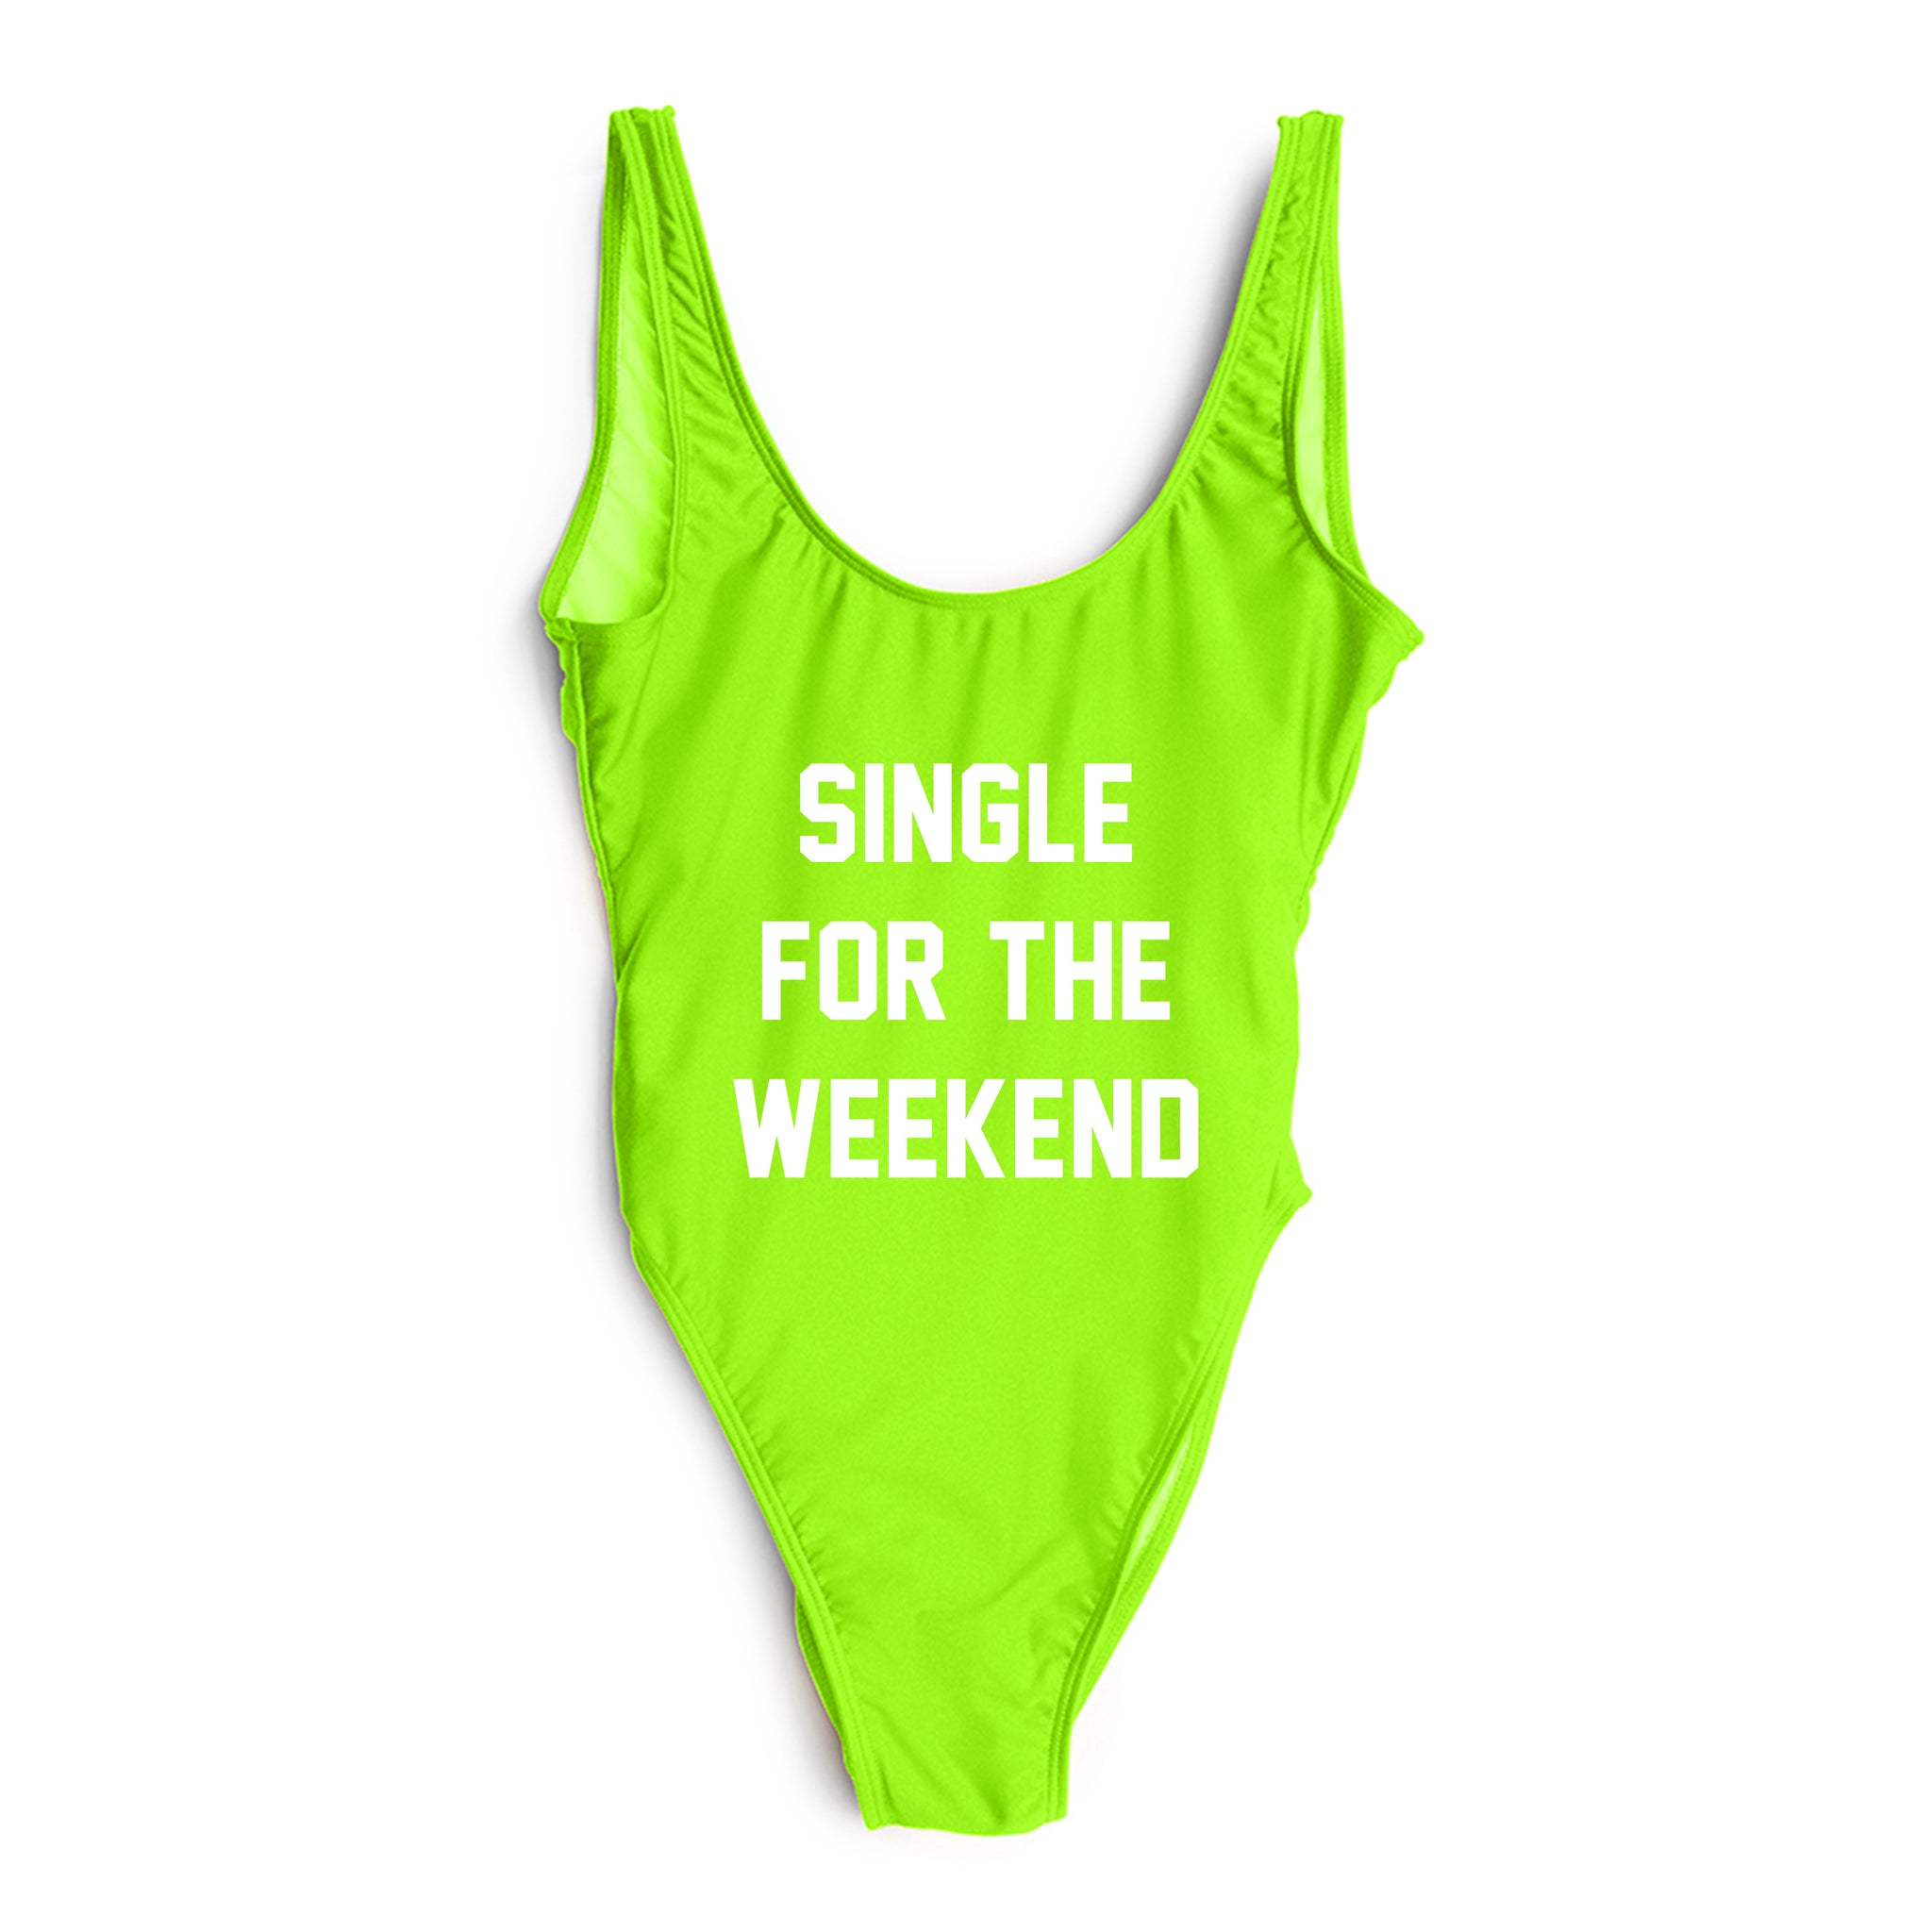 SINGLE FOR THE WEEKEND [SWIMSUIT]